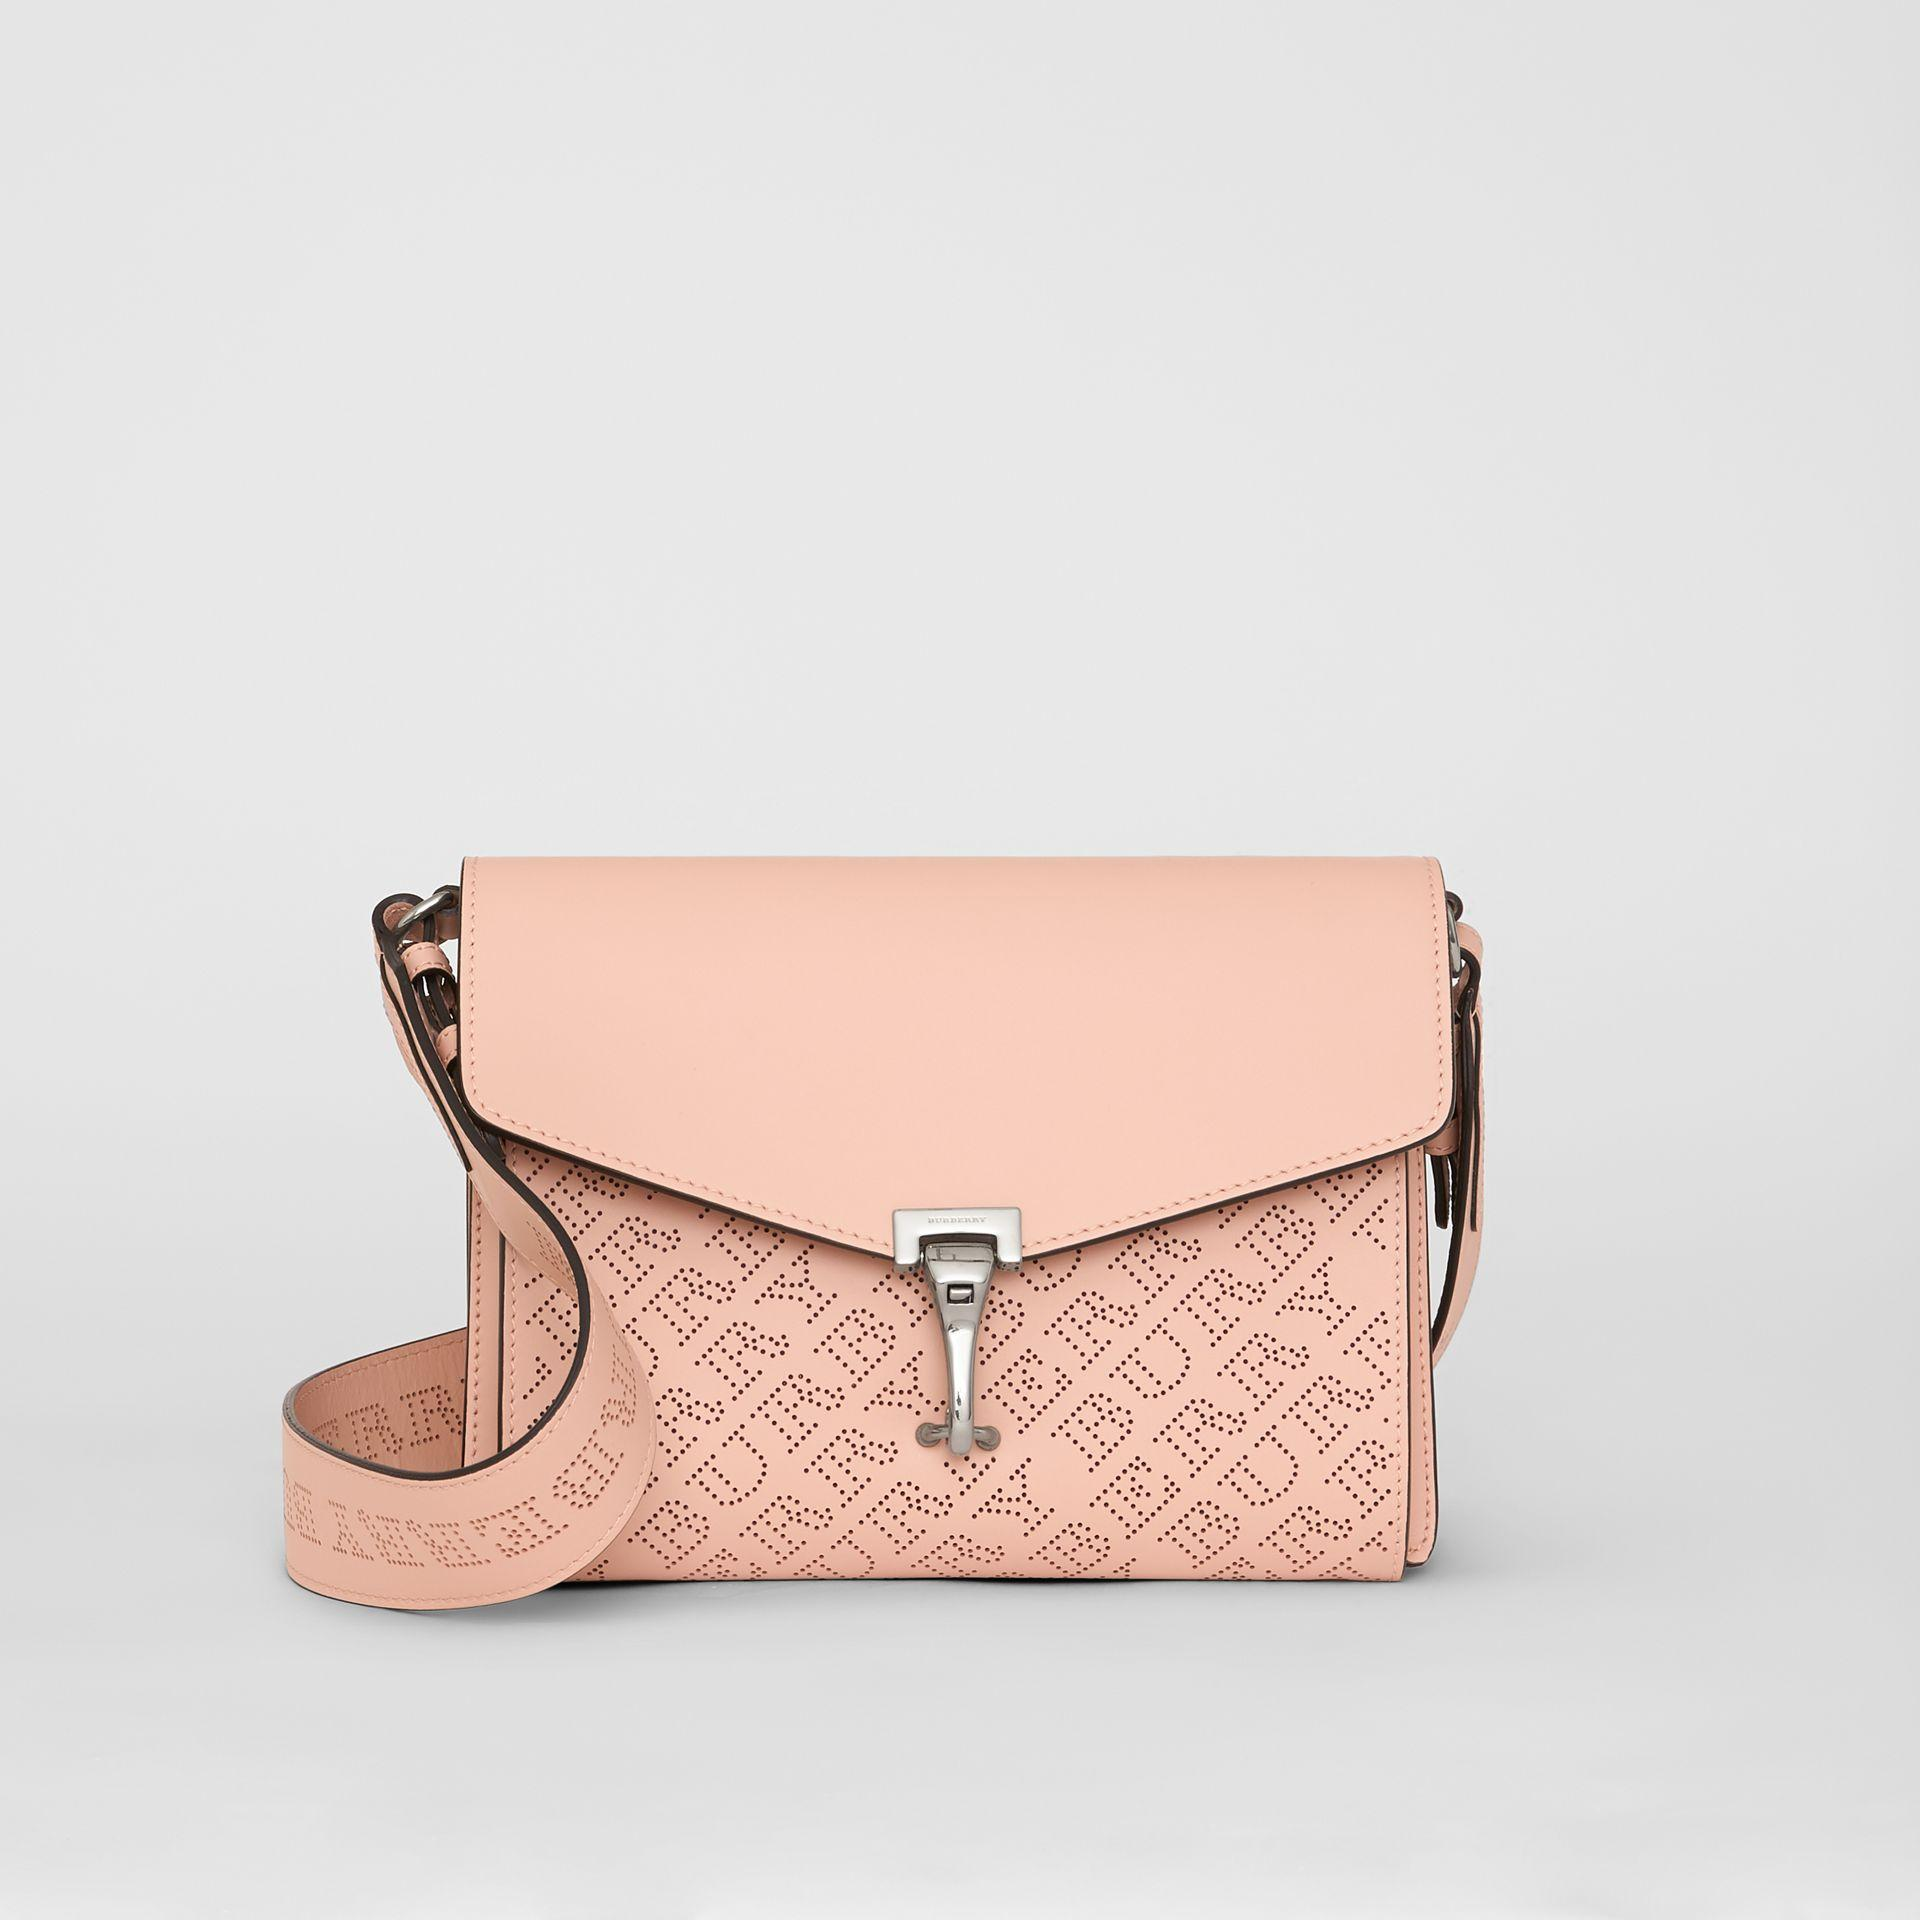 1cab13d736b3 Burberry Small Perforated Logo Leather Crossbody Bag In Pink